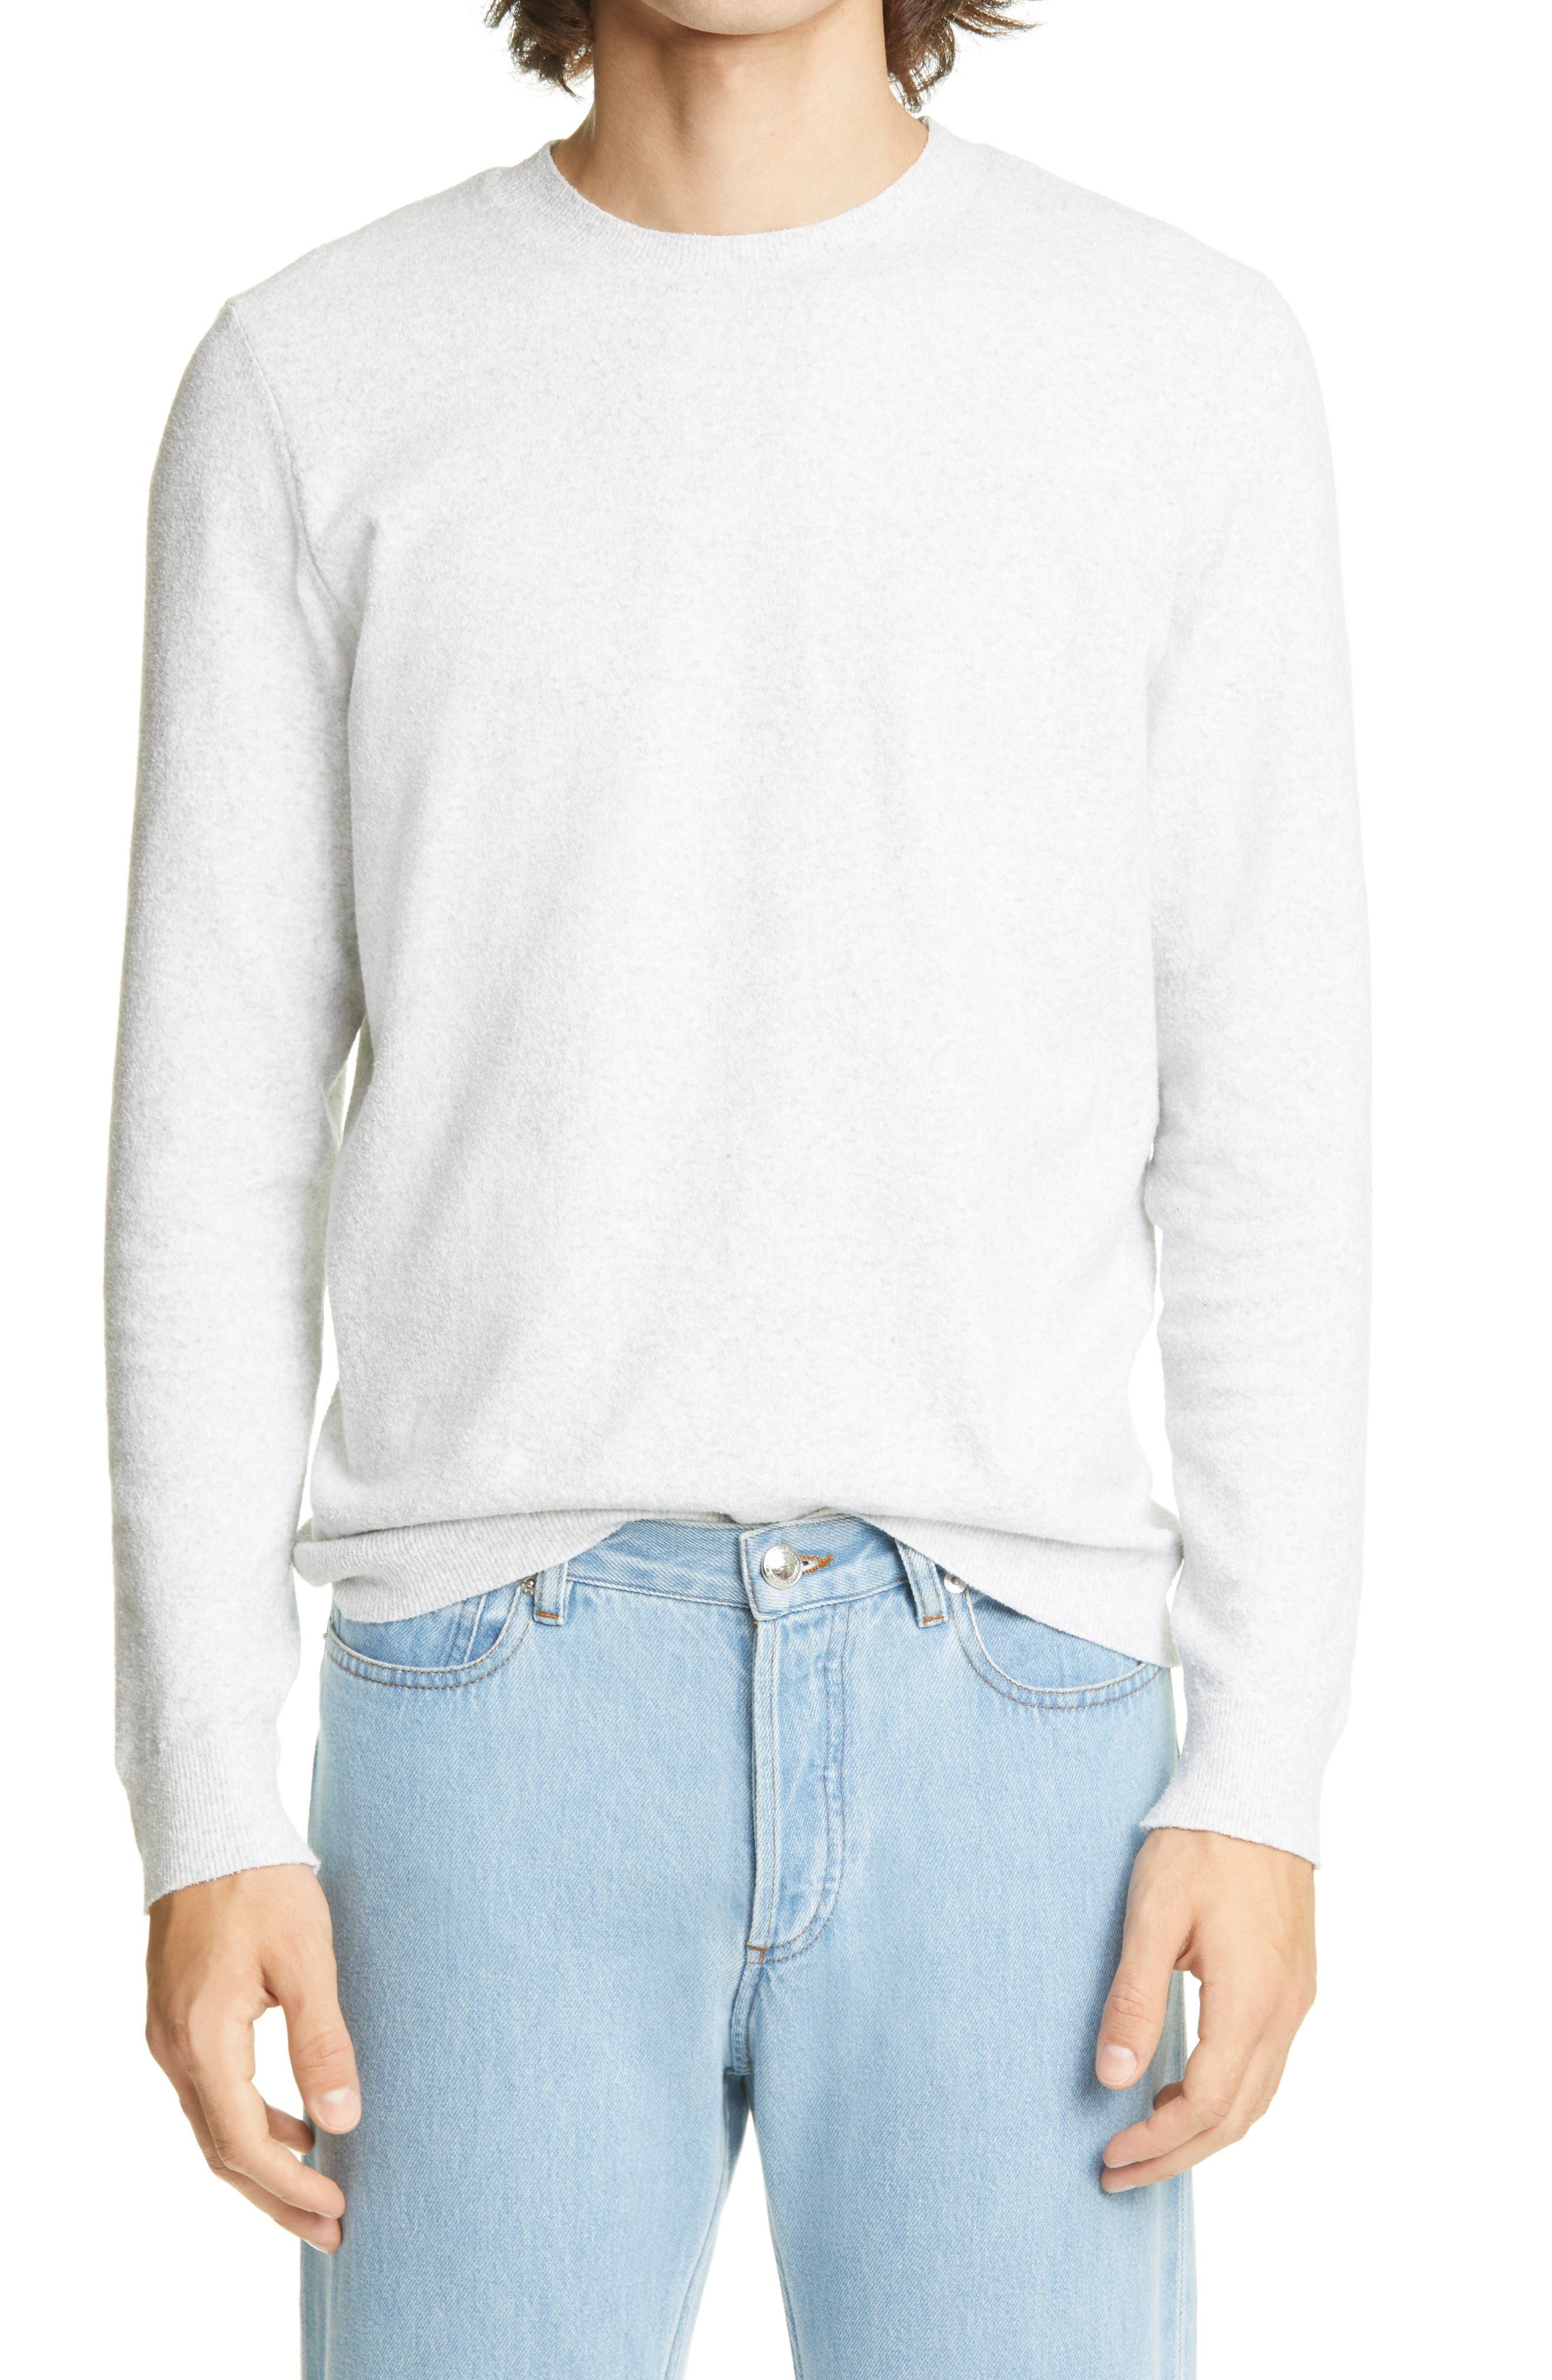 Lightly heathered coloring brings easy versatility to a sweater knit from a soft, stretchy cotton blend in a fit that\\\'s easy to layer or wear on its own. Style Name:A.p.c. Patrick Crewneck Sweater. Style Number: 6082378. Available in stores.